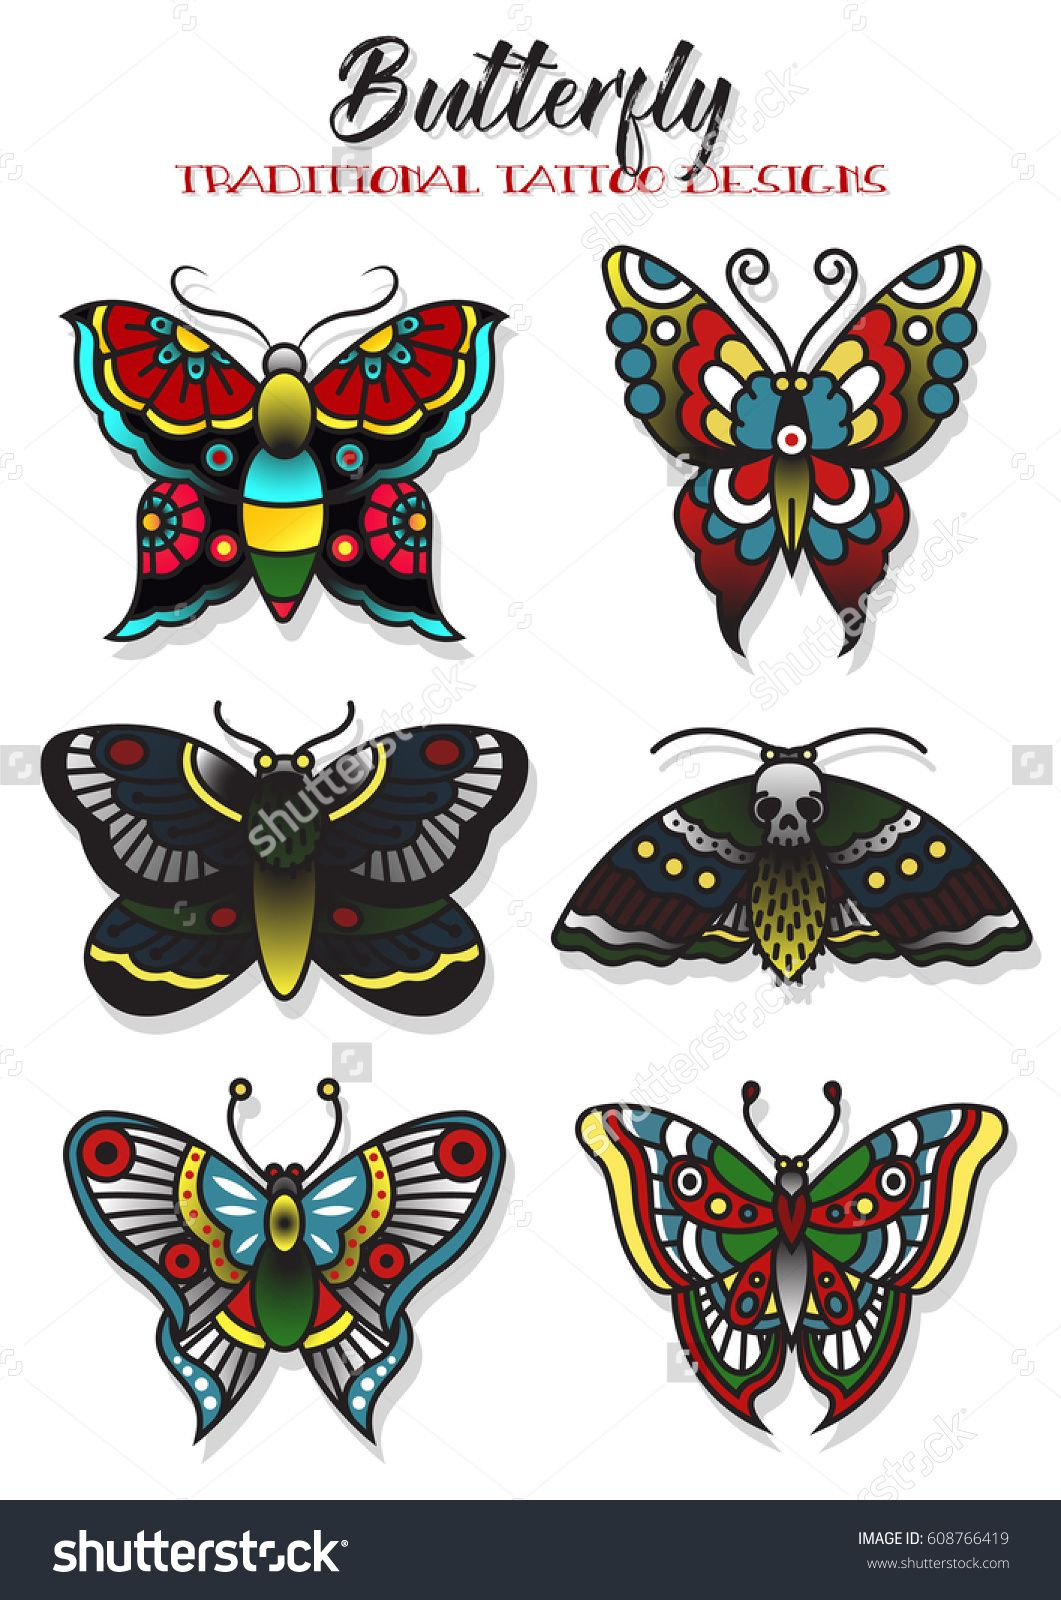 Butterfly and Mole Traditional Tattoo Designs(upper left